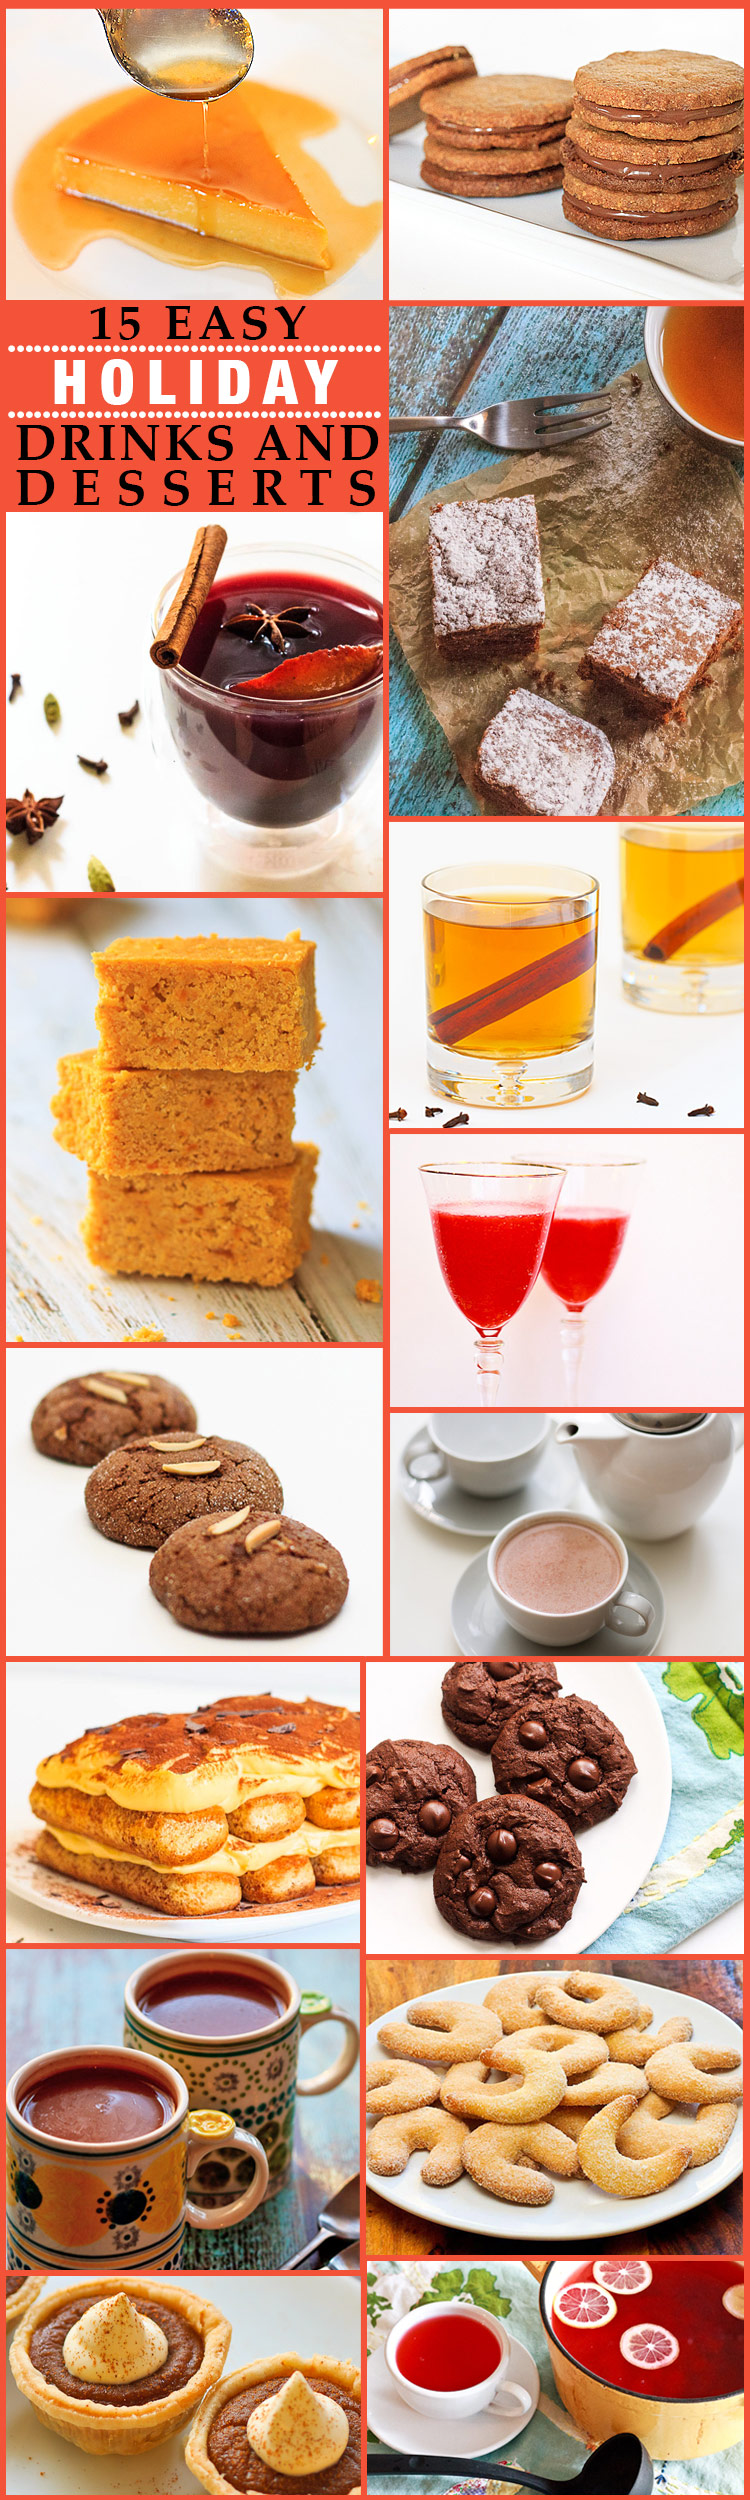 Holiday Drinks and Desserts